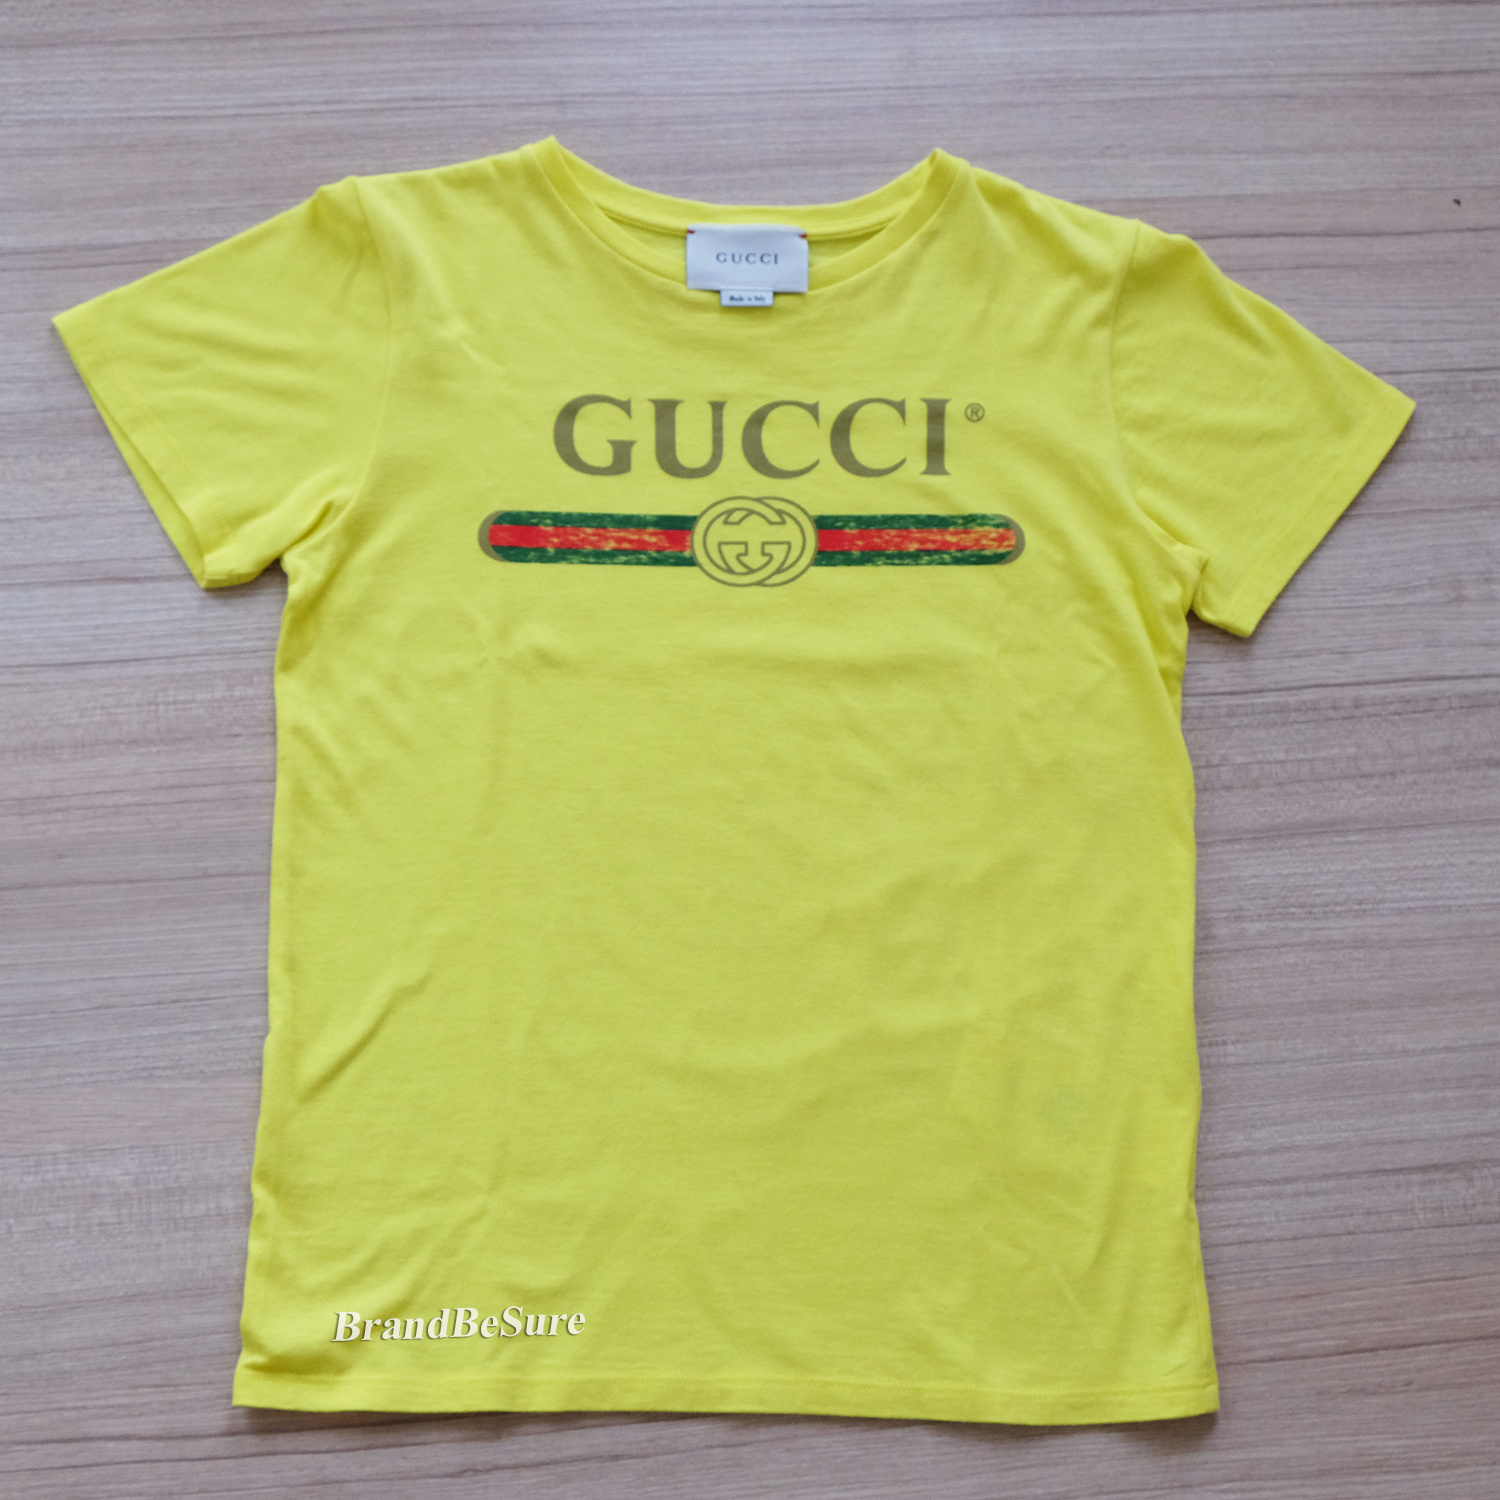 7be280ee Gucci Yellow With Gucci Logo Short Sleeve T-Shirt Size 10 (XS ...